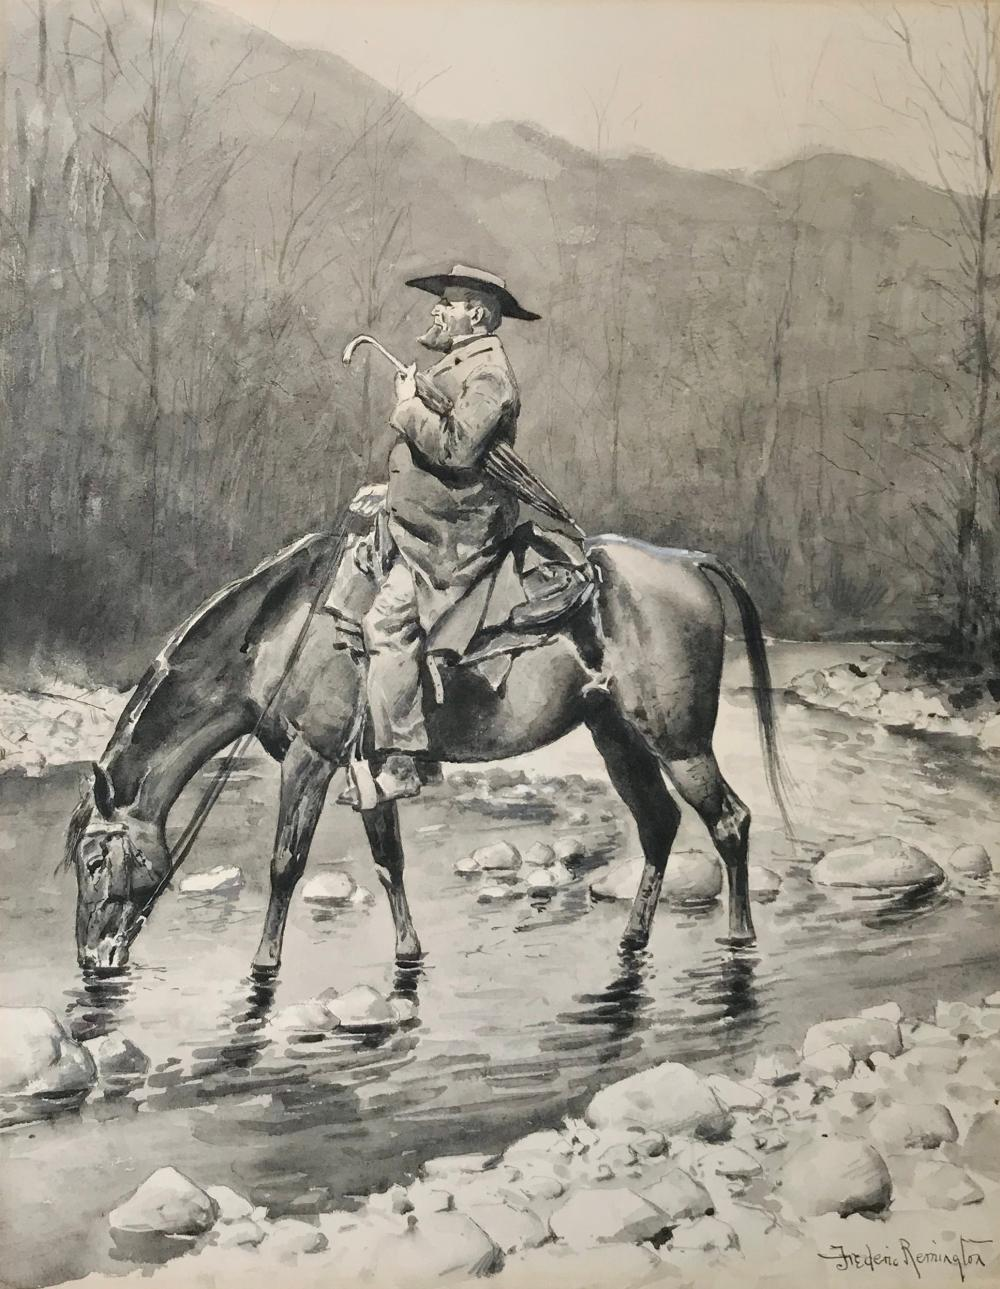 FREDERIC SACKRIDER REMINGTON, (American, 1861-1909), The Circuit Rider, watercolor en grisaille, sight: 22 1/2 x 17 1/2 in., sheet: 23 1/4 x 18 1/4 in., frame: 33 1/2 x 28 in.